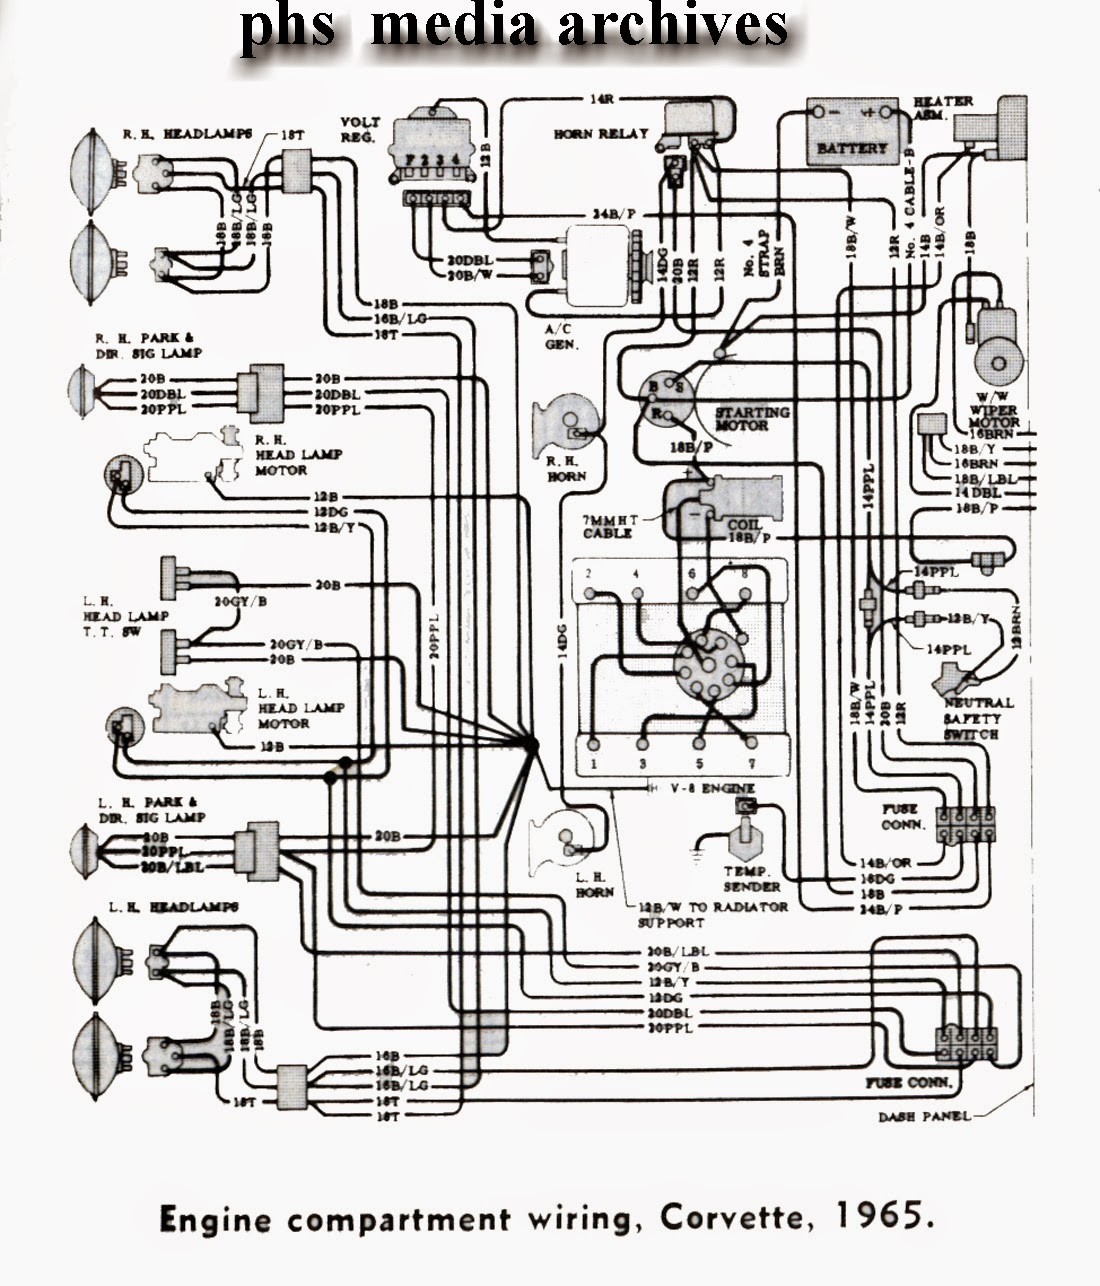 1977 corvette wiring diagram schematic schematics wiring diagrams u2022 rh parntesis co 1978 trans am wiring 1977 camaro wiring diagram as well 1979  [ 1100 x 1286 Pixel ]